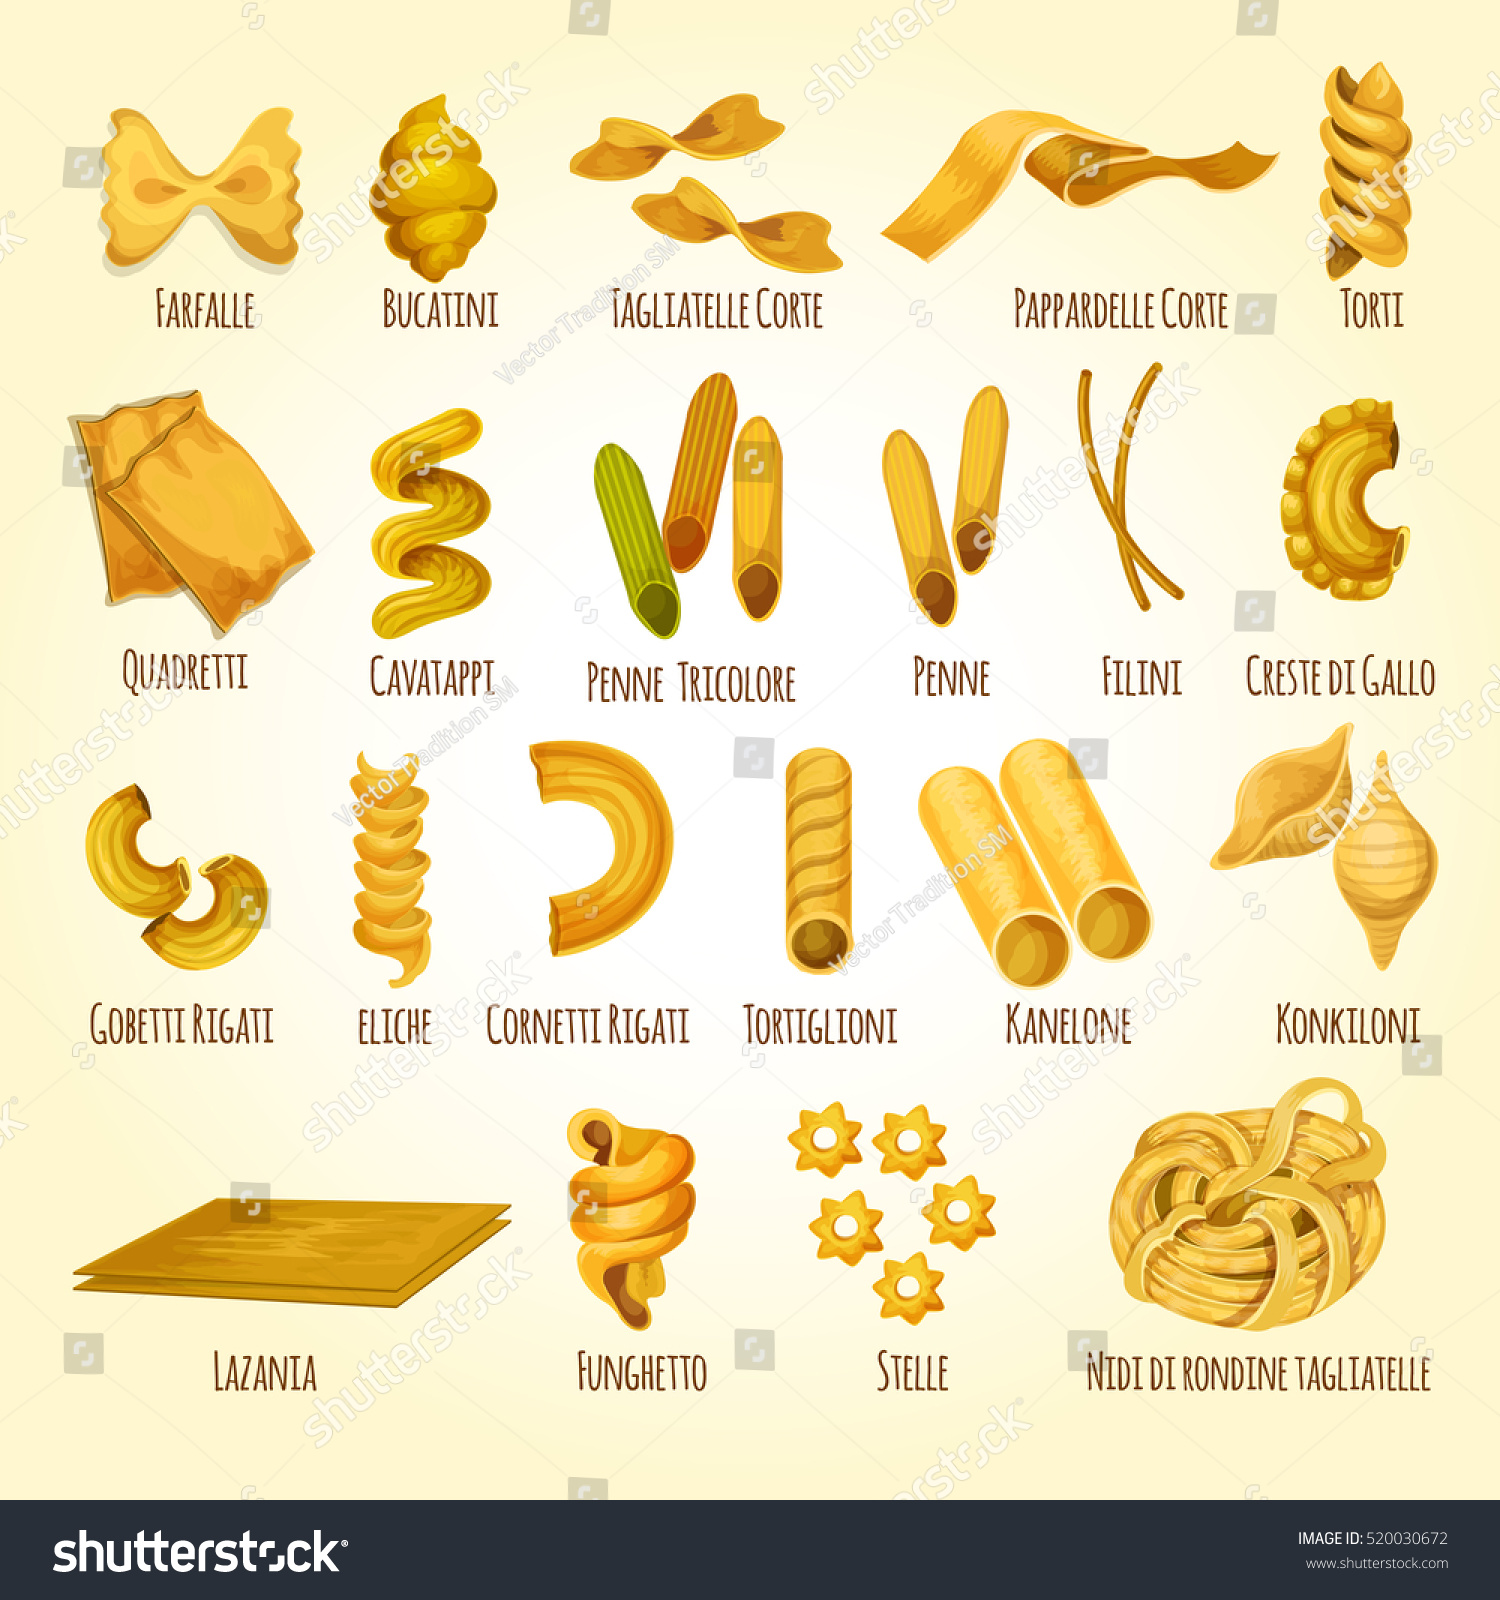 Worksheets Different Shapes And Names names shapes free image different types and of authentic italian pasta with lasagna